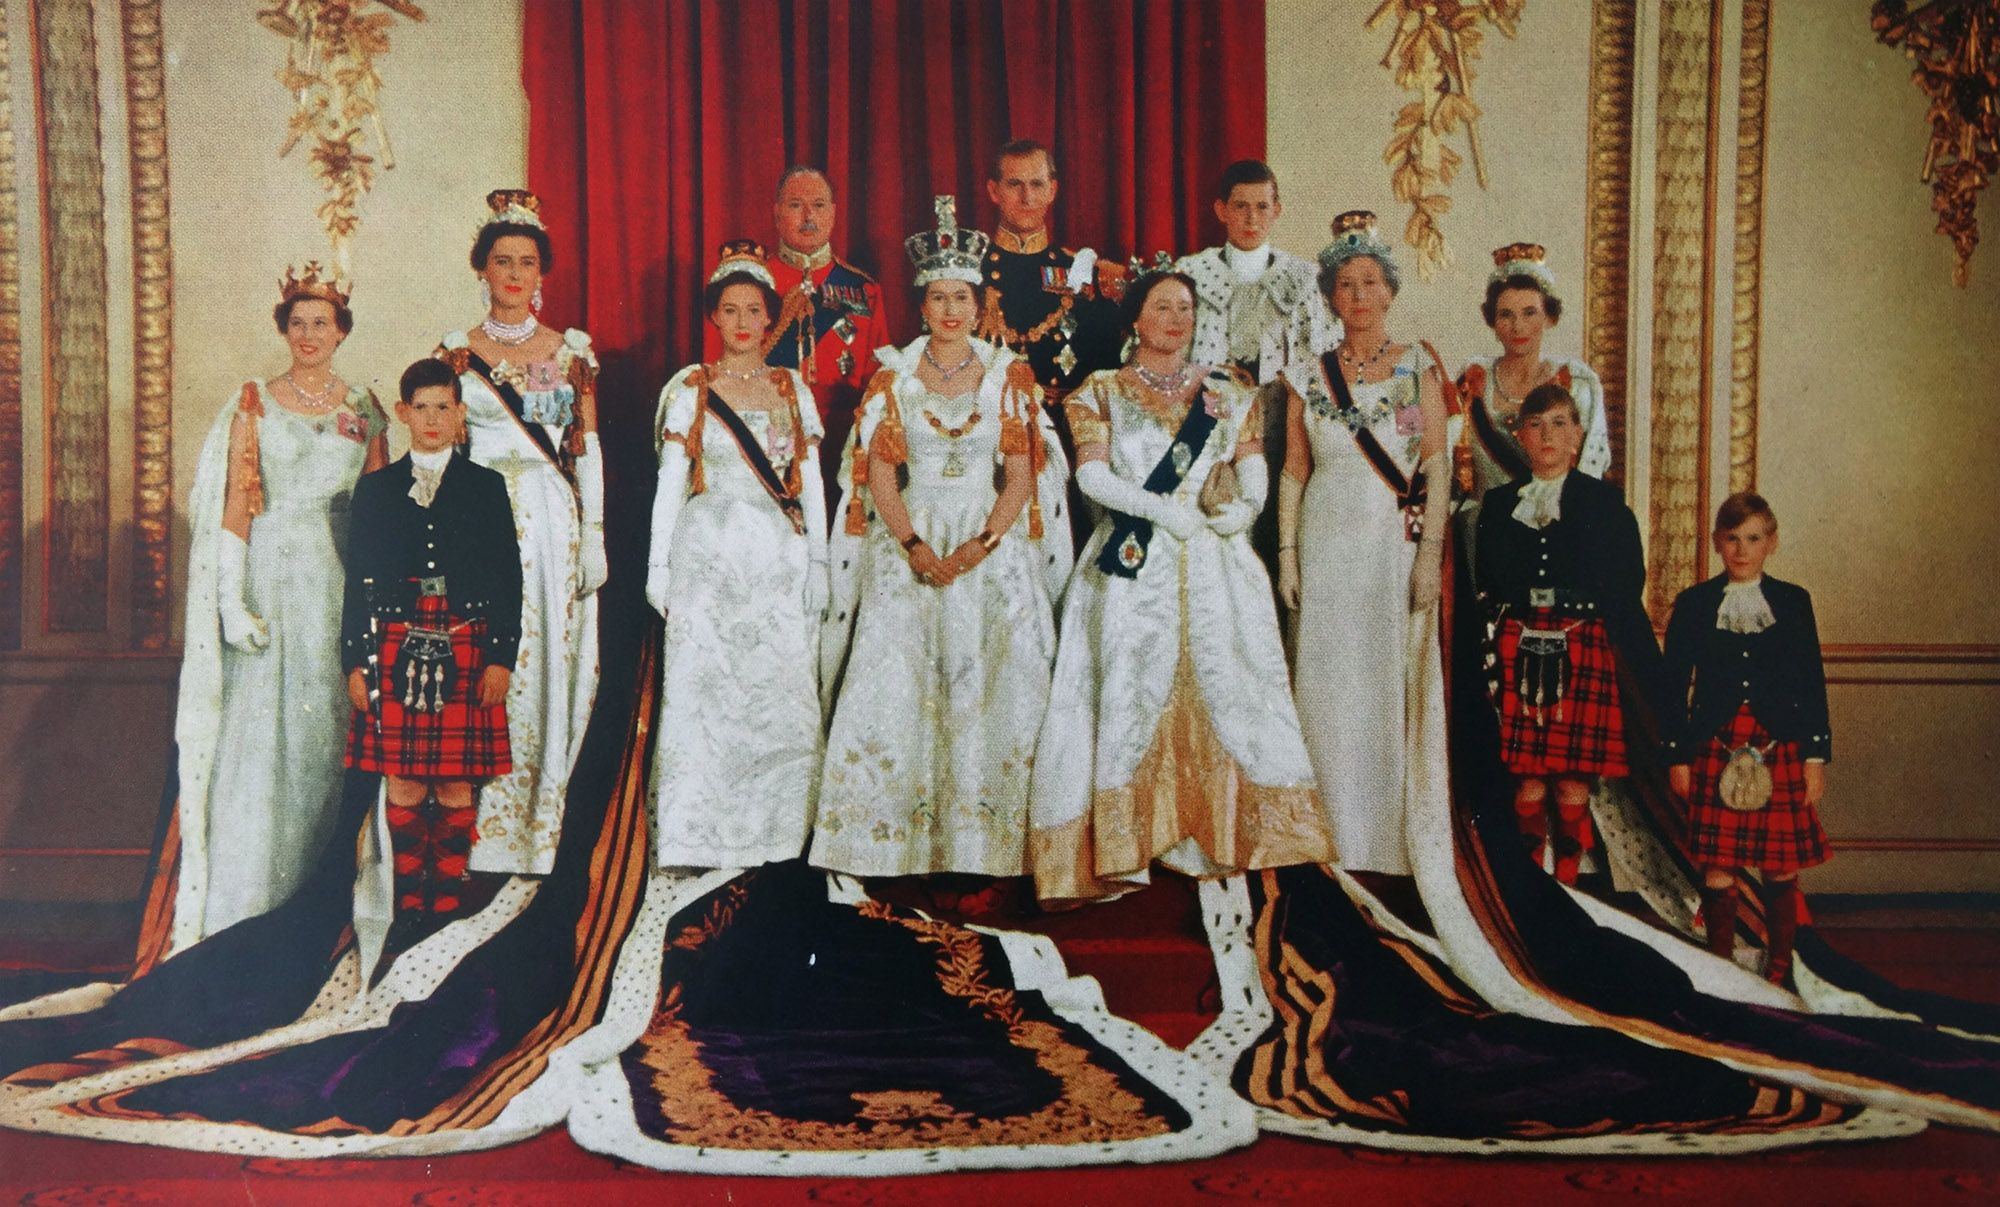 The Crown! The Crowd! Remembering Queen Elizabeth's